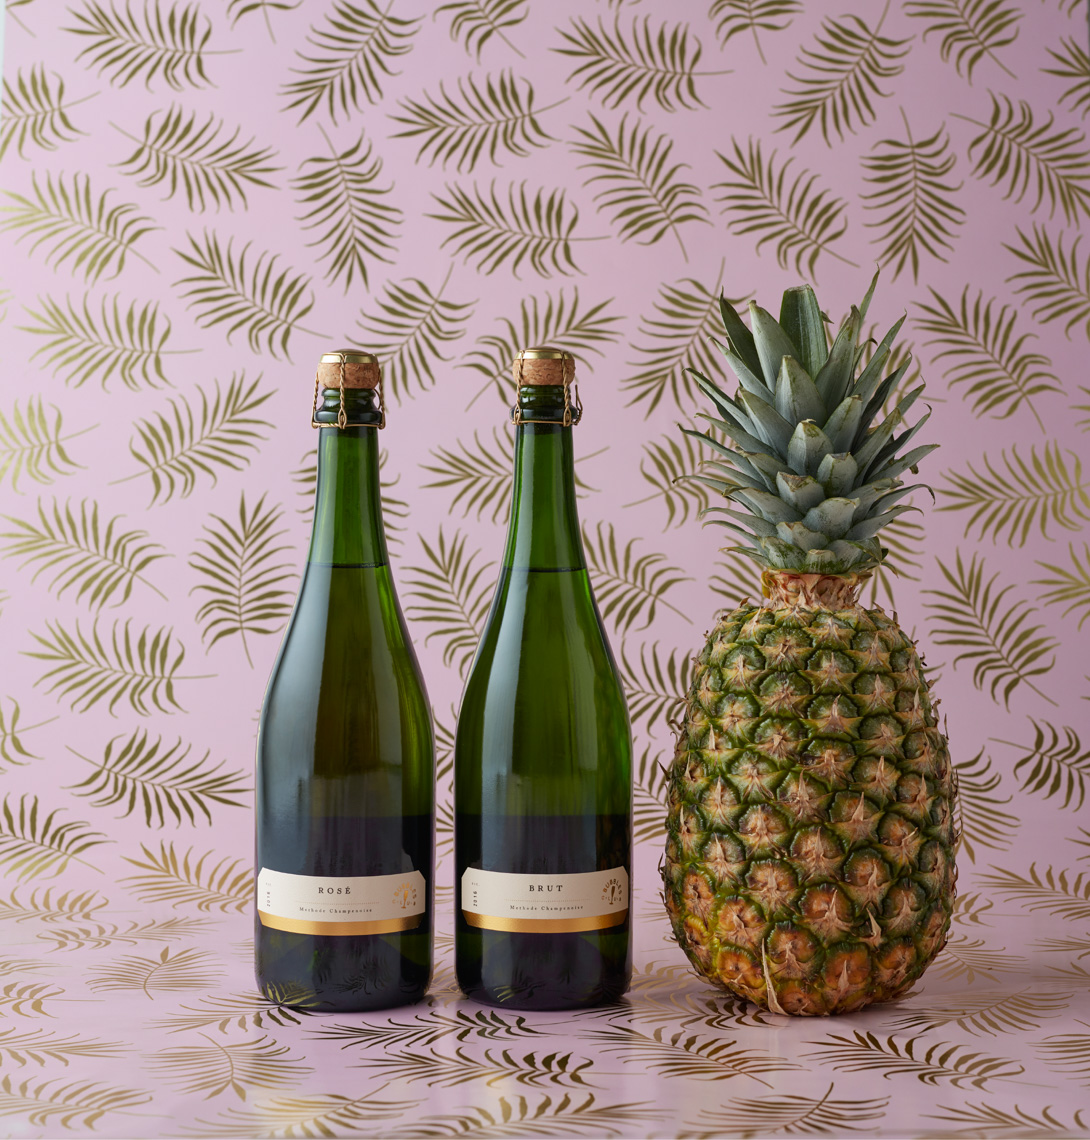 Sparkling wine with pineapple hilip Harvey Photography, San Francisco, California, still life, interiors, food, lifestyle and product photography